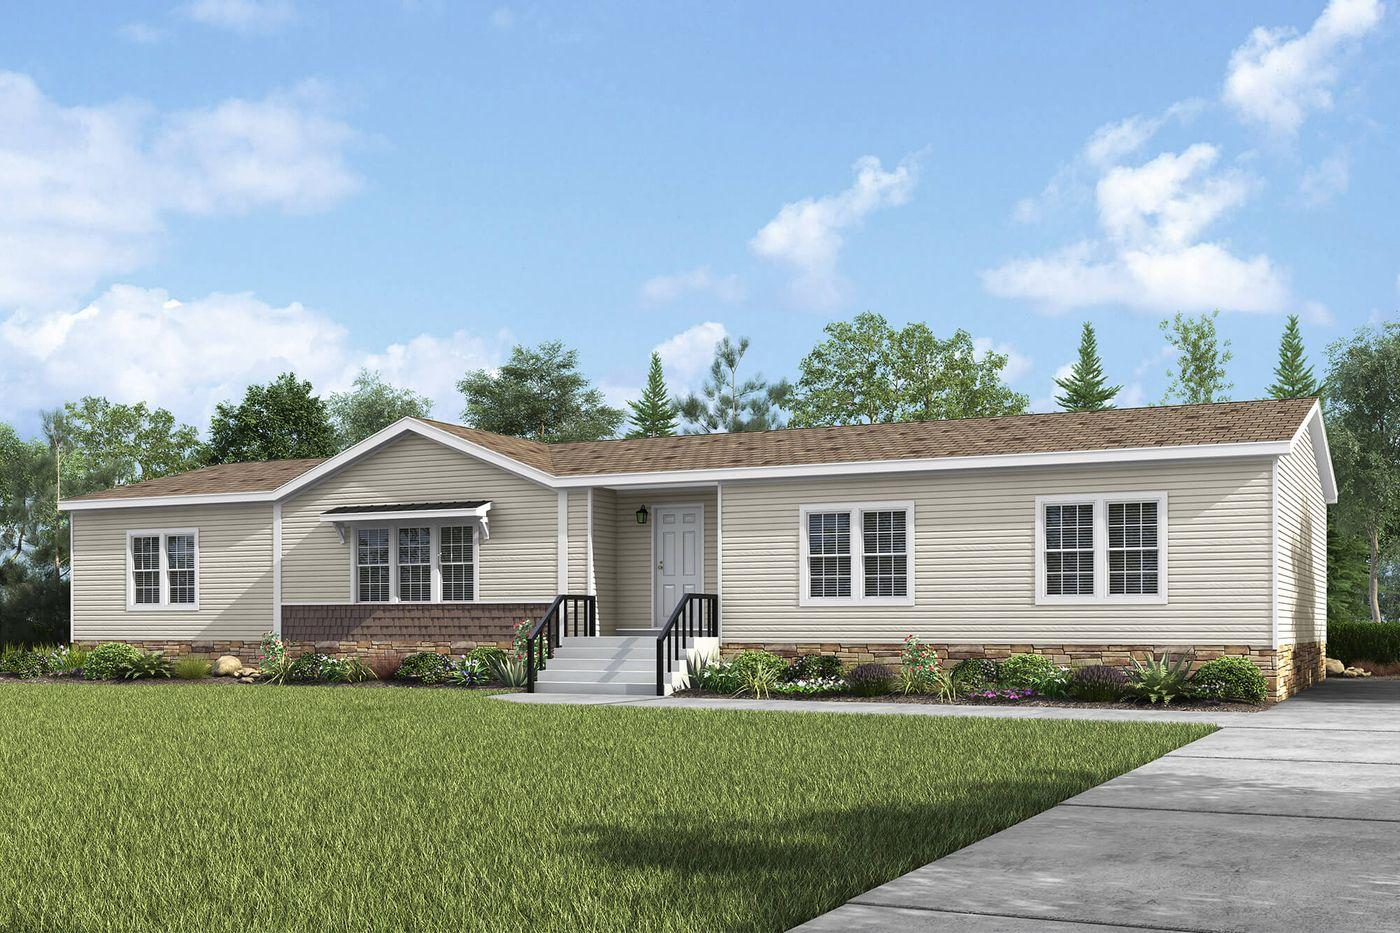 Exterior of the Whitmore Manufactured Home from Worldwide Mobile Homes in Lumberton, Texas